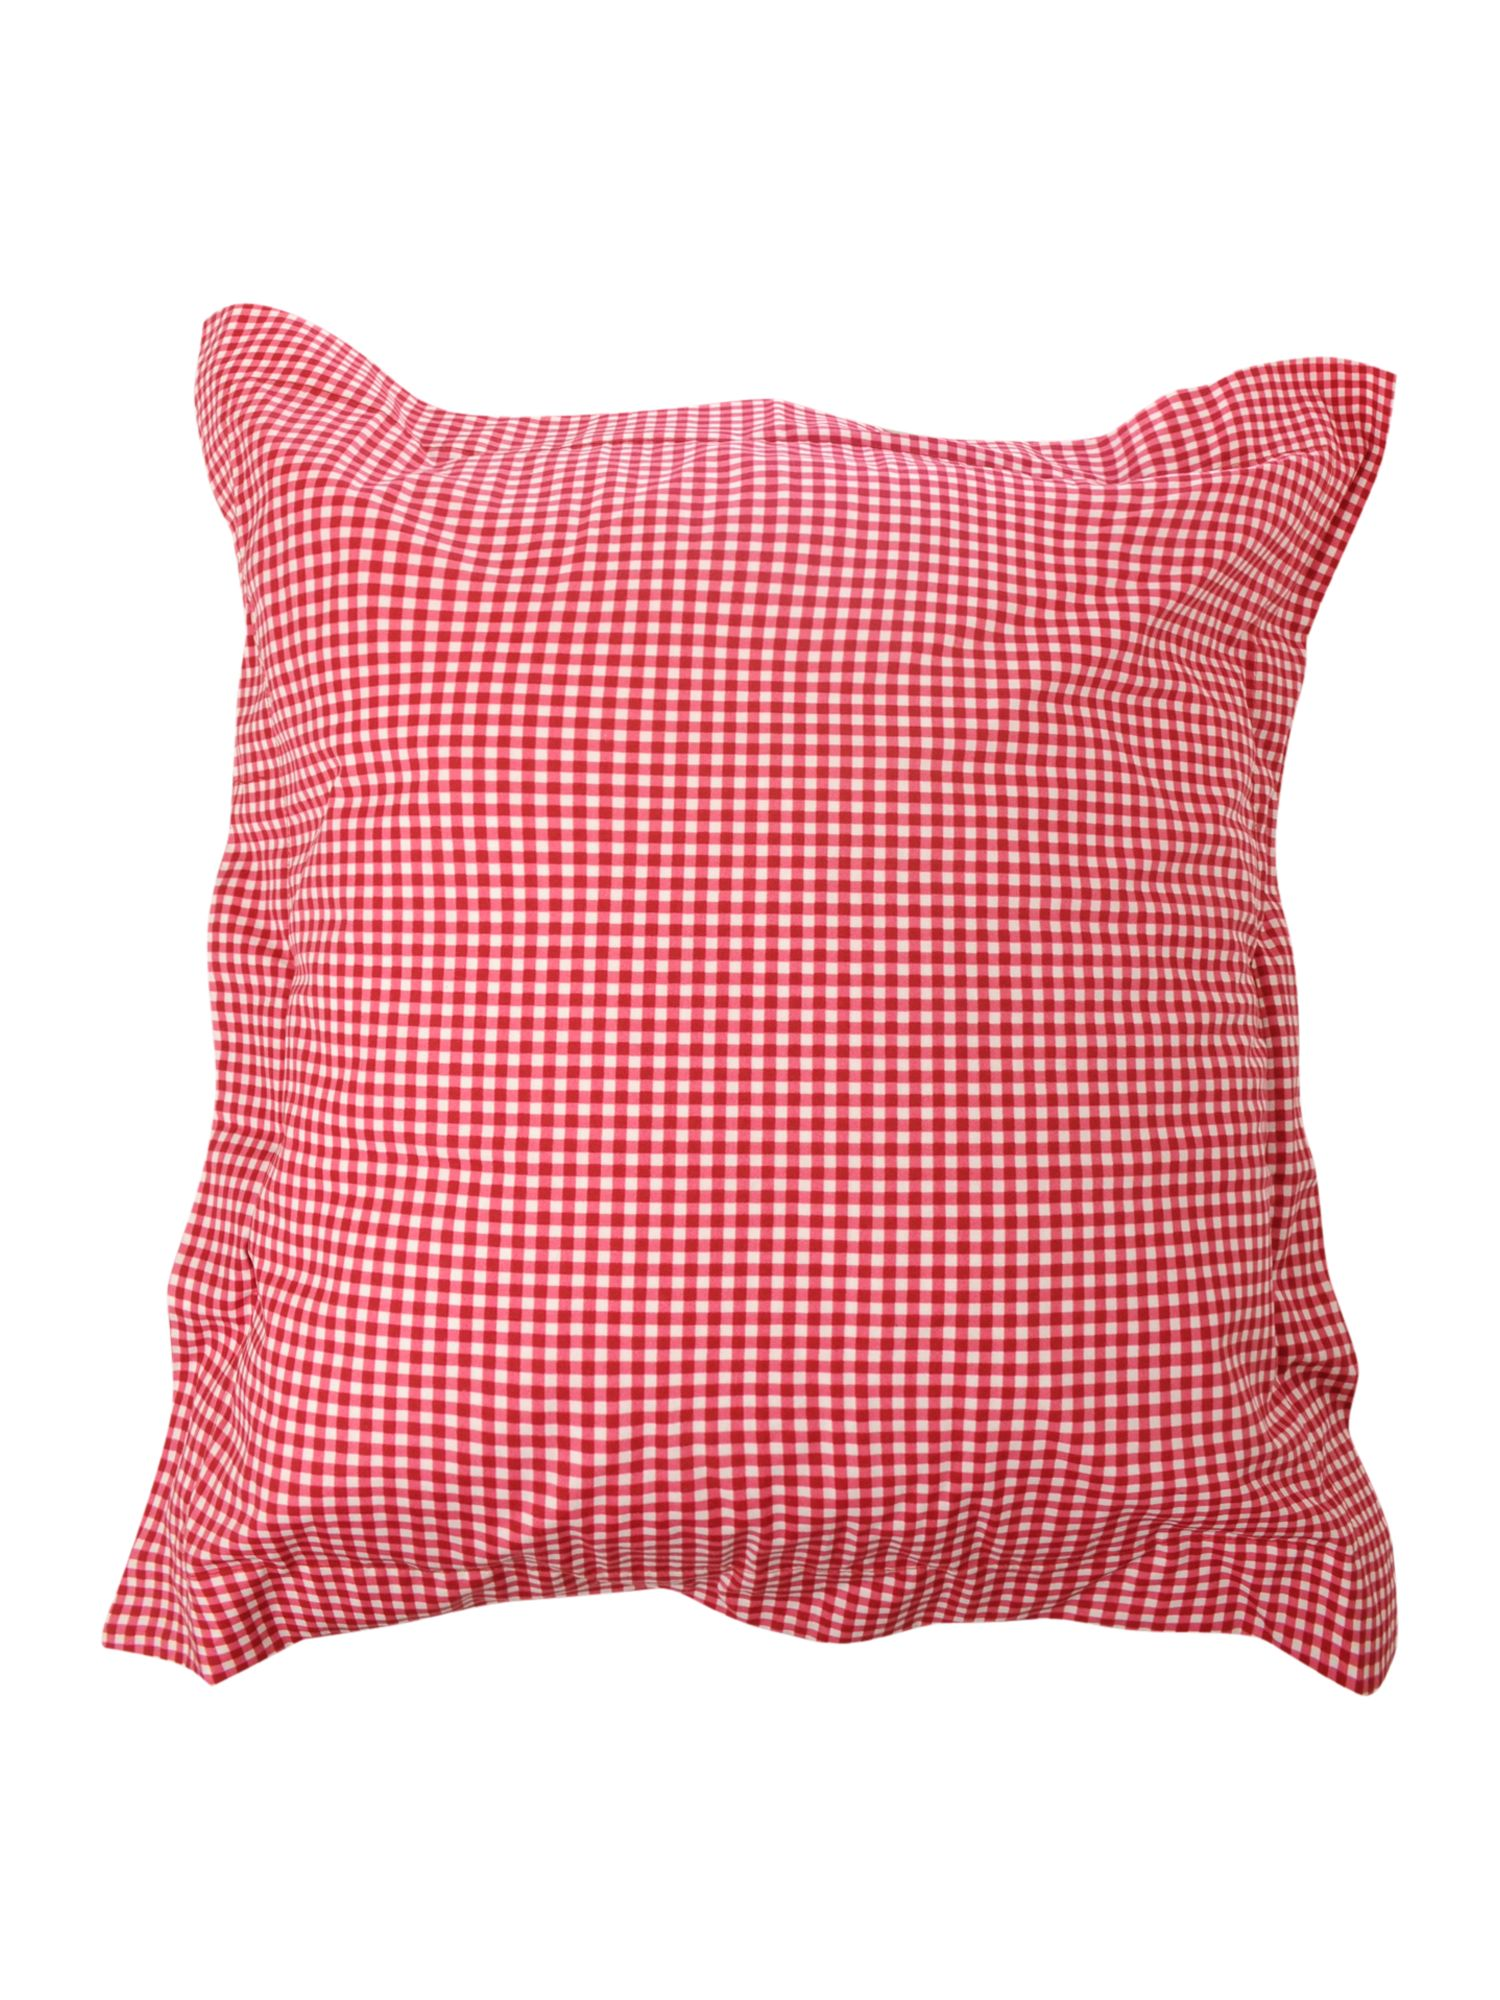 Lydia square cushion